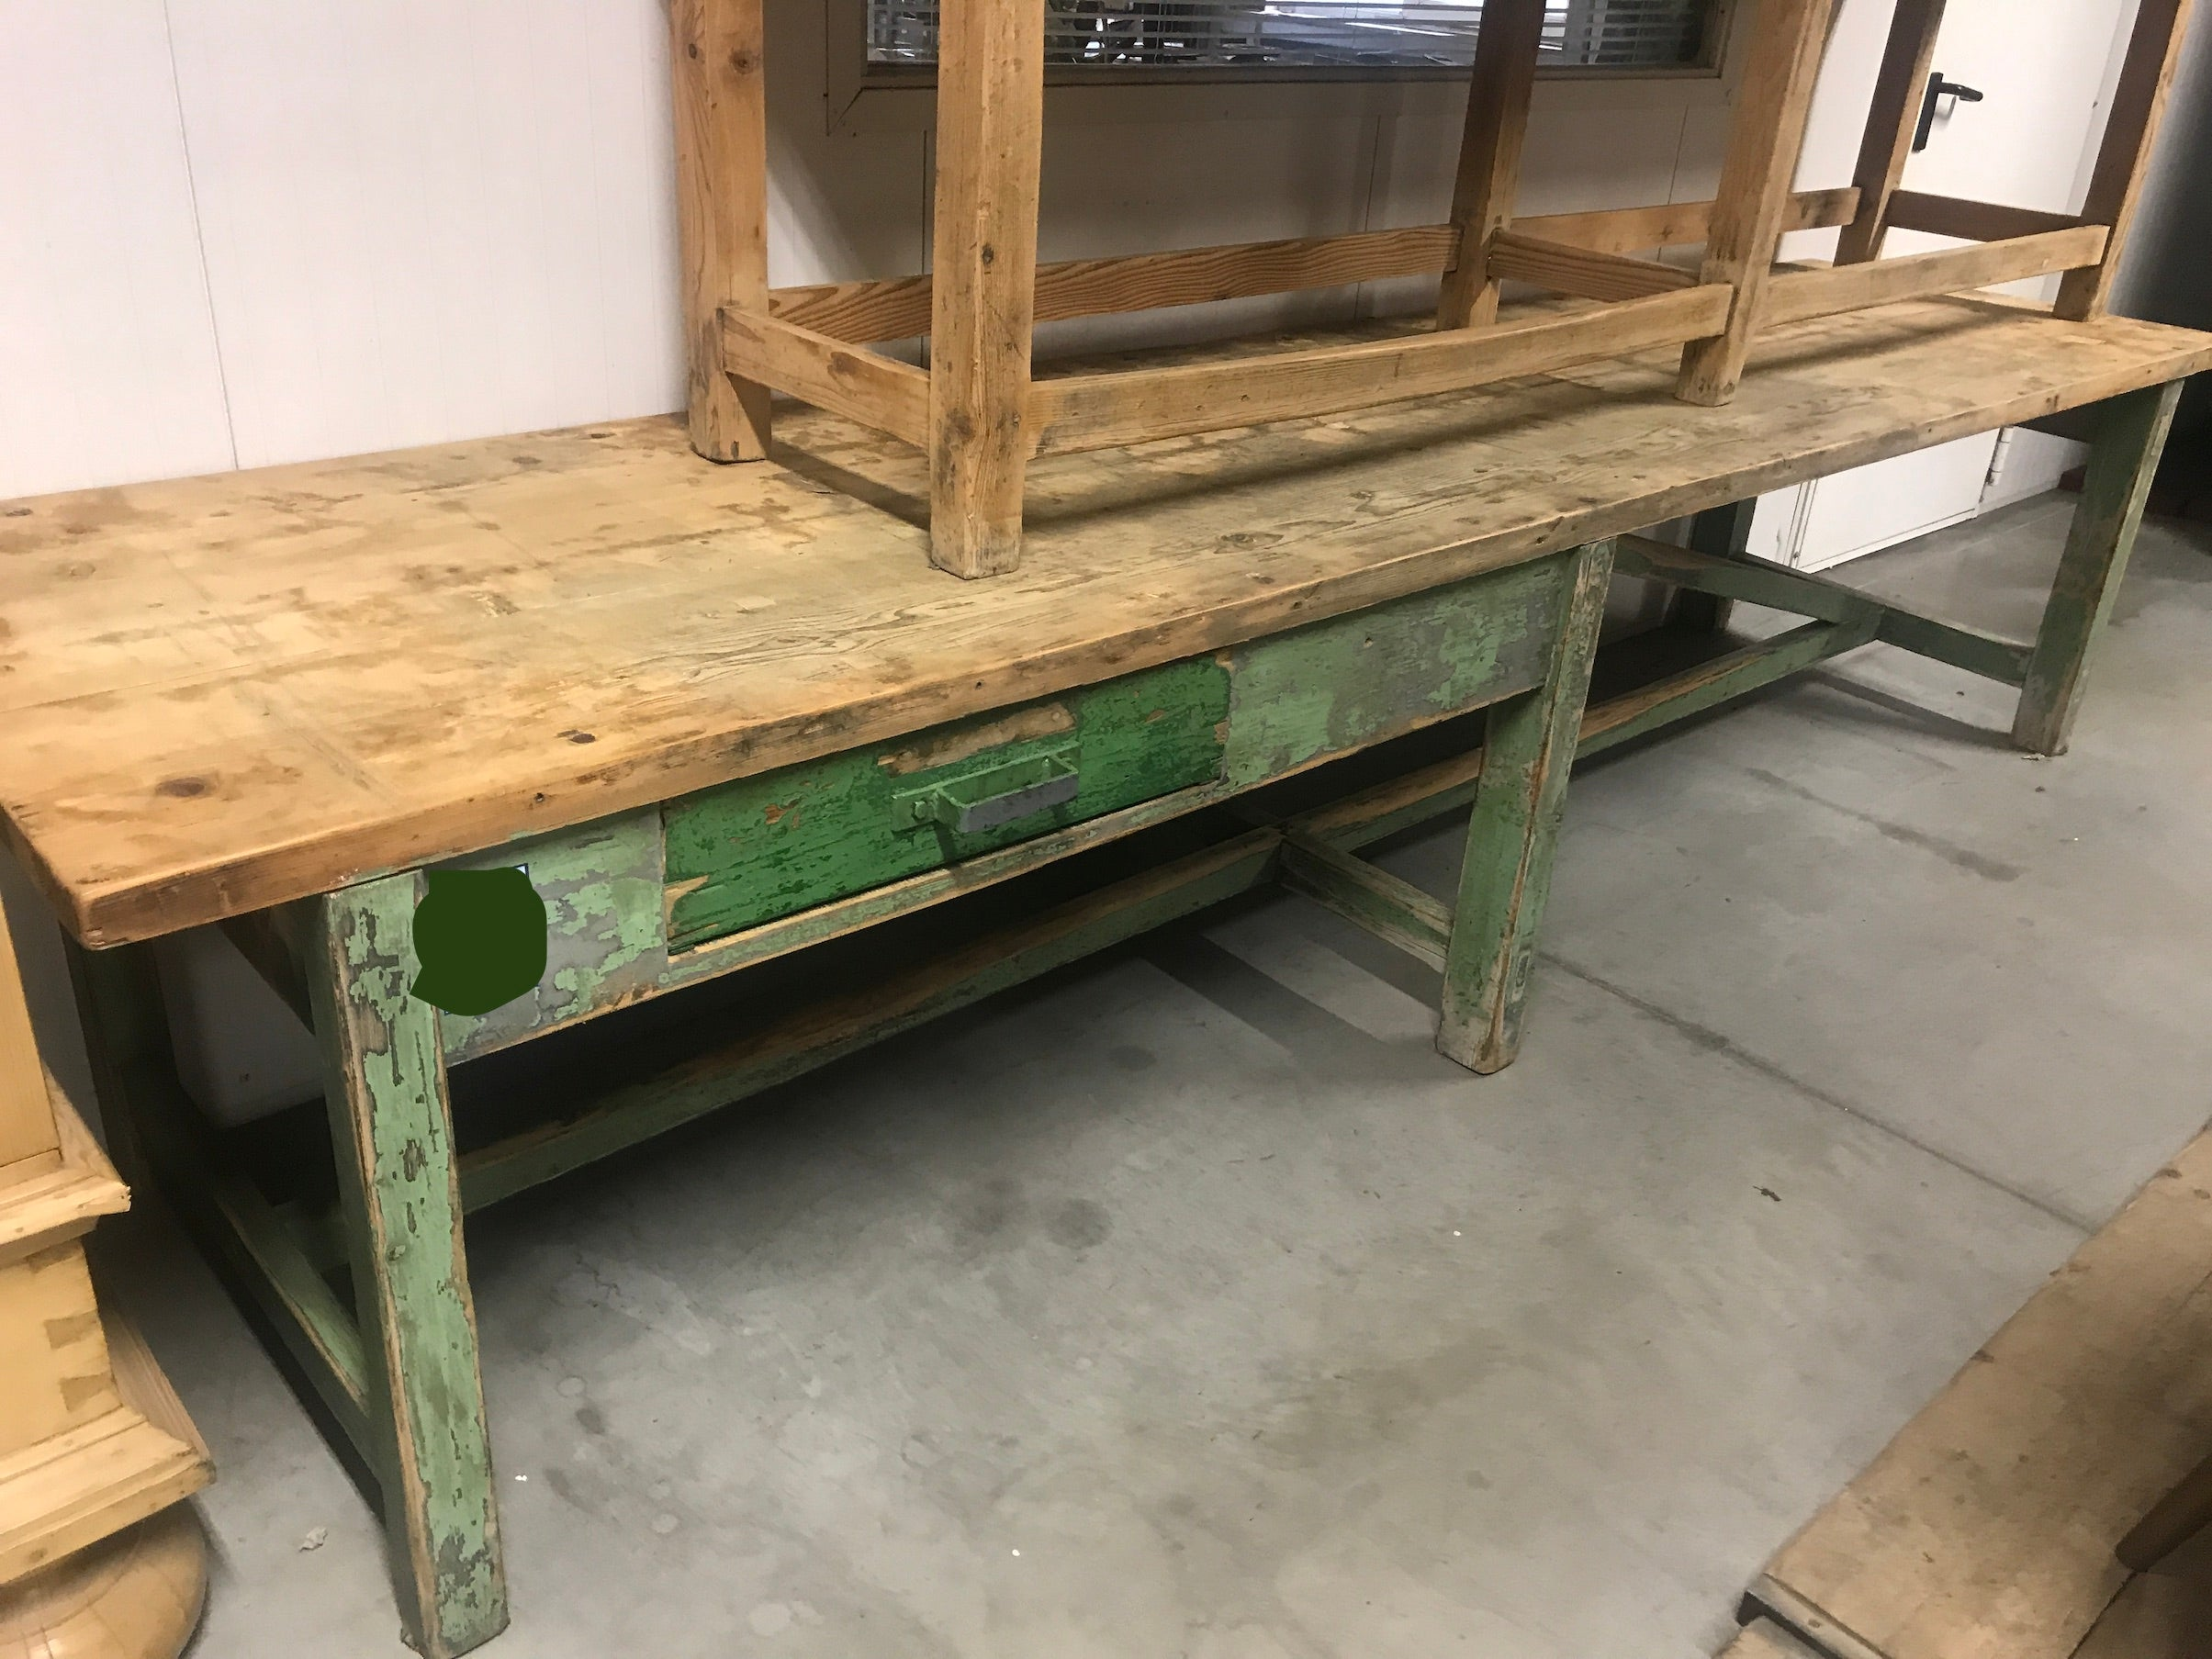 Vintage industrial European workbench table counter  kitchen island #2473.